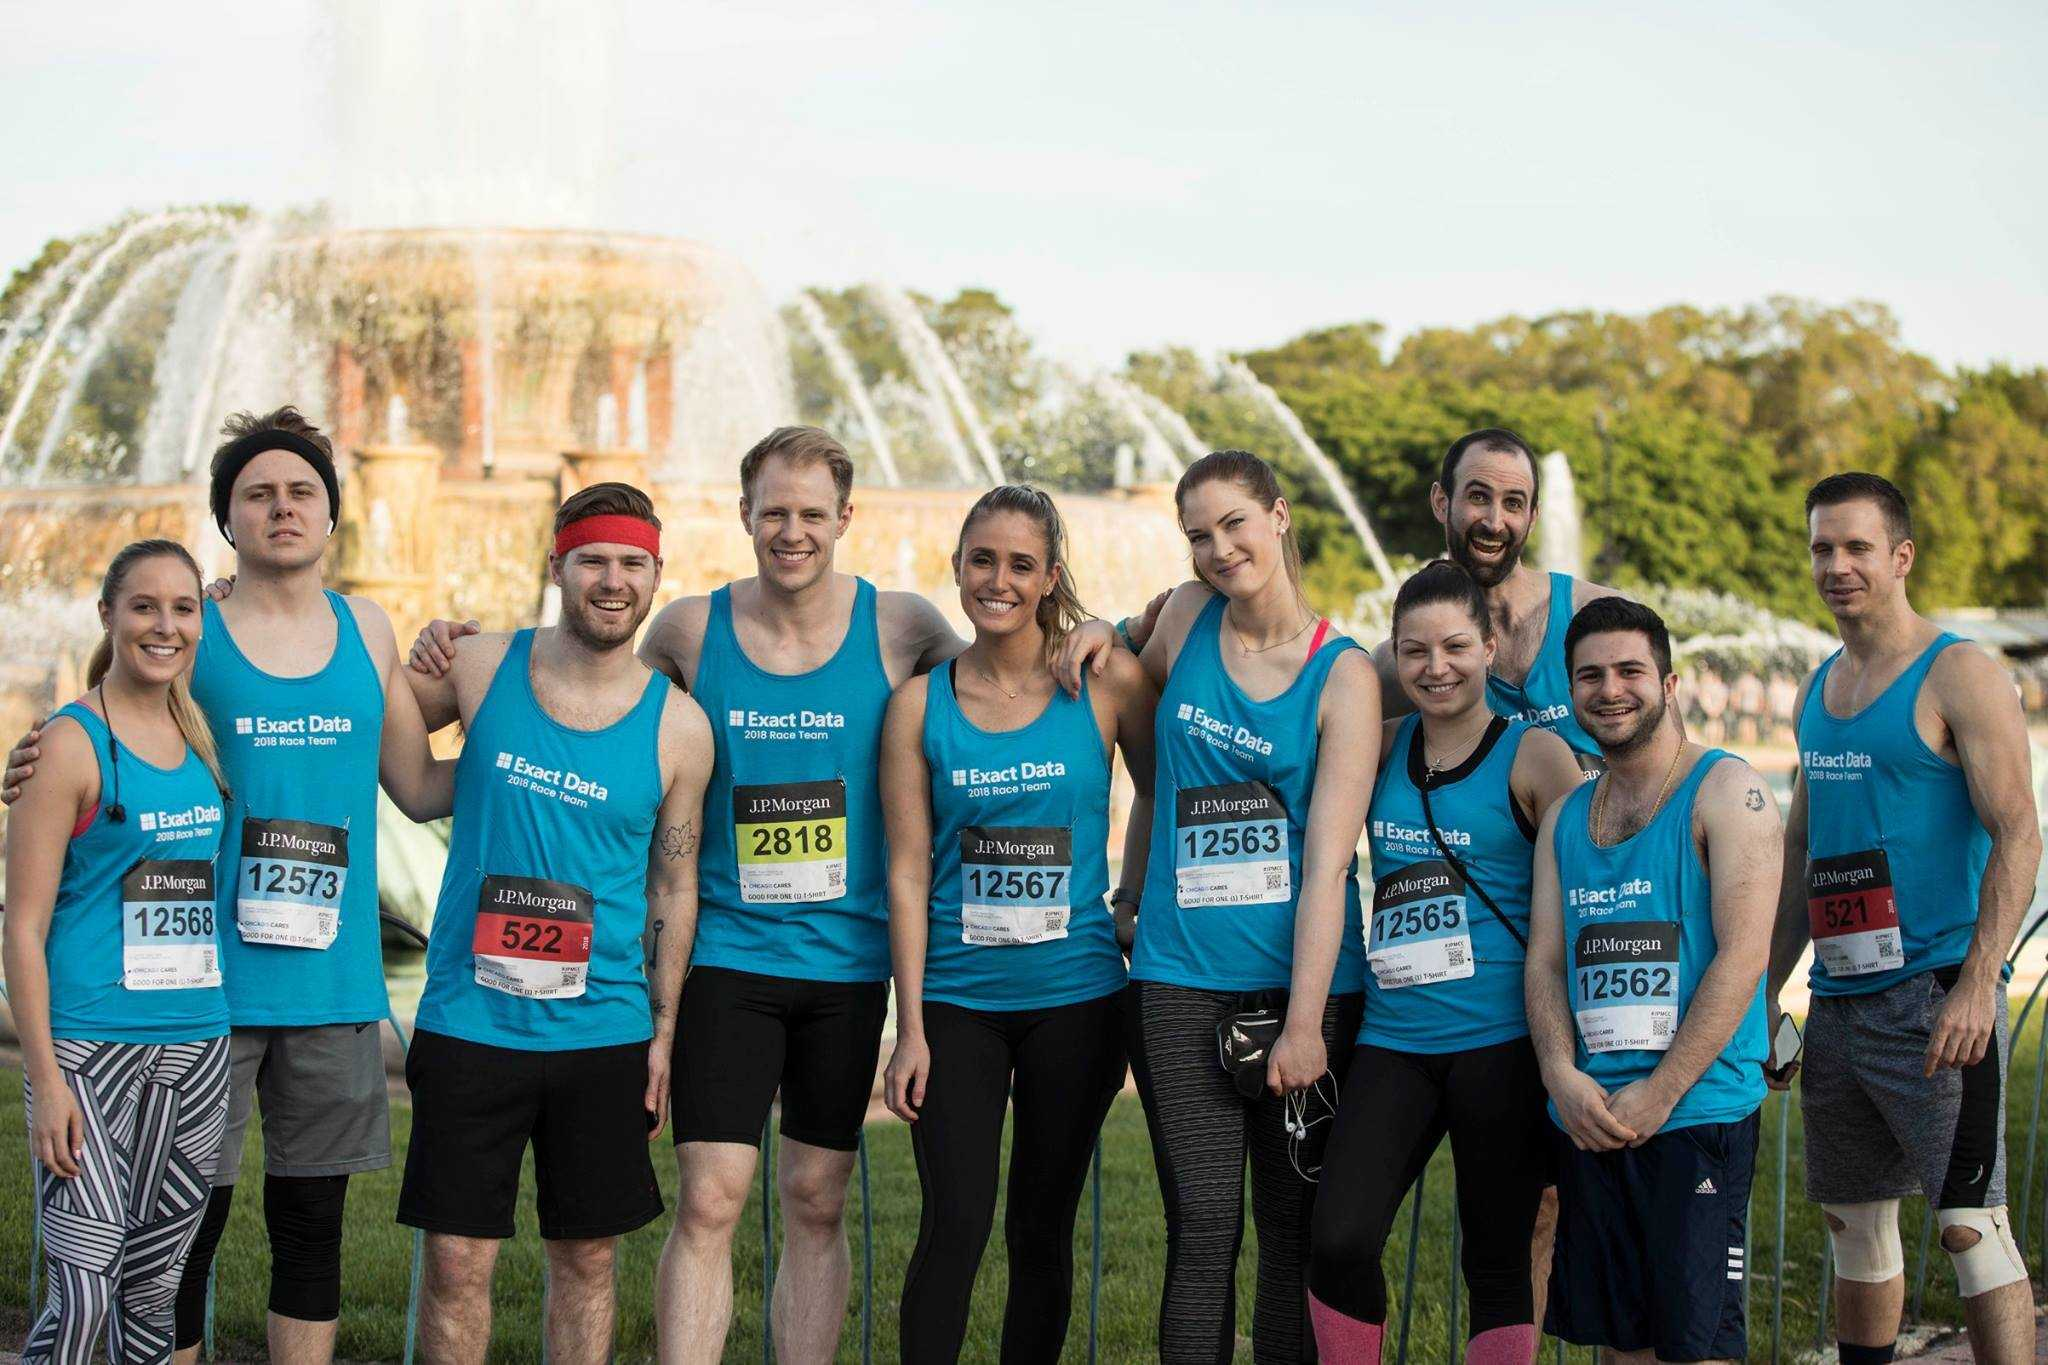 Team Exact Data Crosses the Chase Corporate Challenge Finish Line